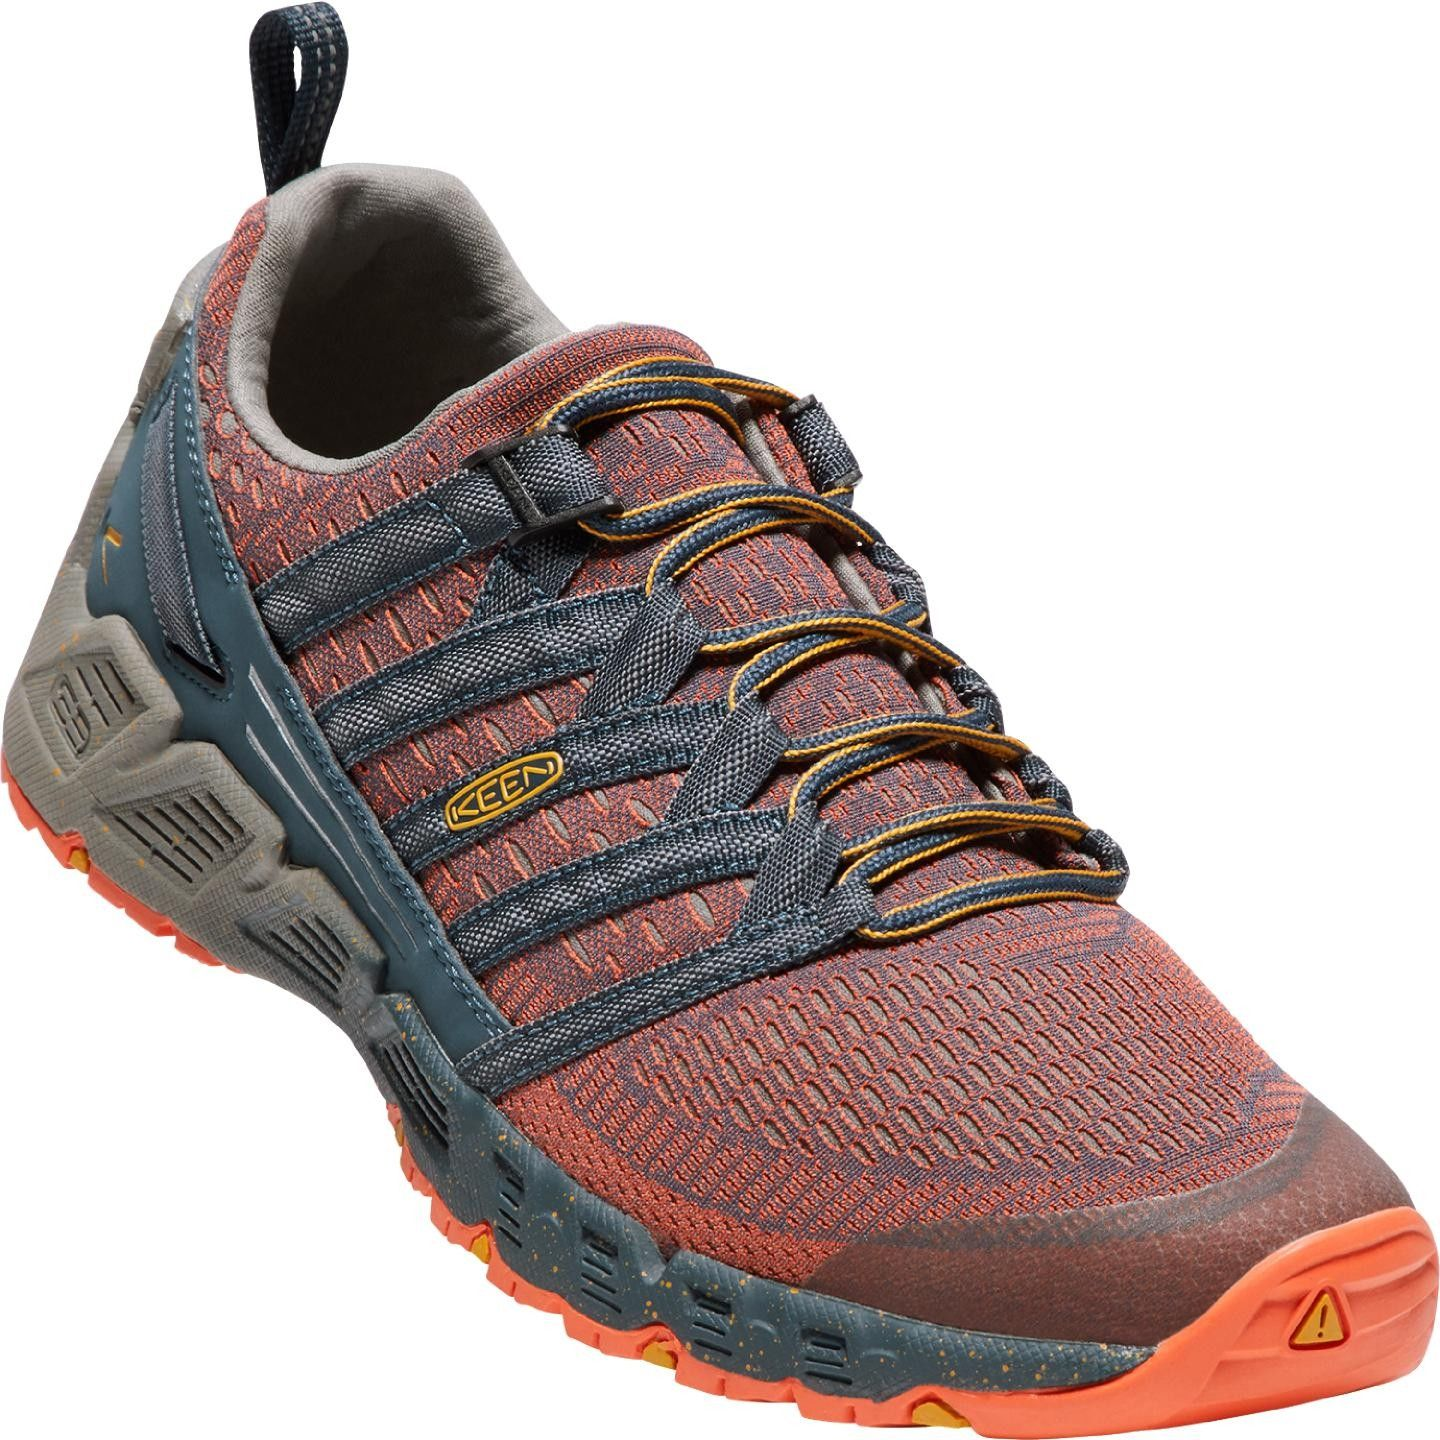 Keen Versago Orange, Male EU 40.5 -Farbe Midnight Navy -Nasturtium, 40.5